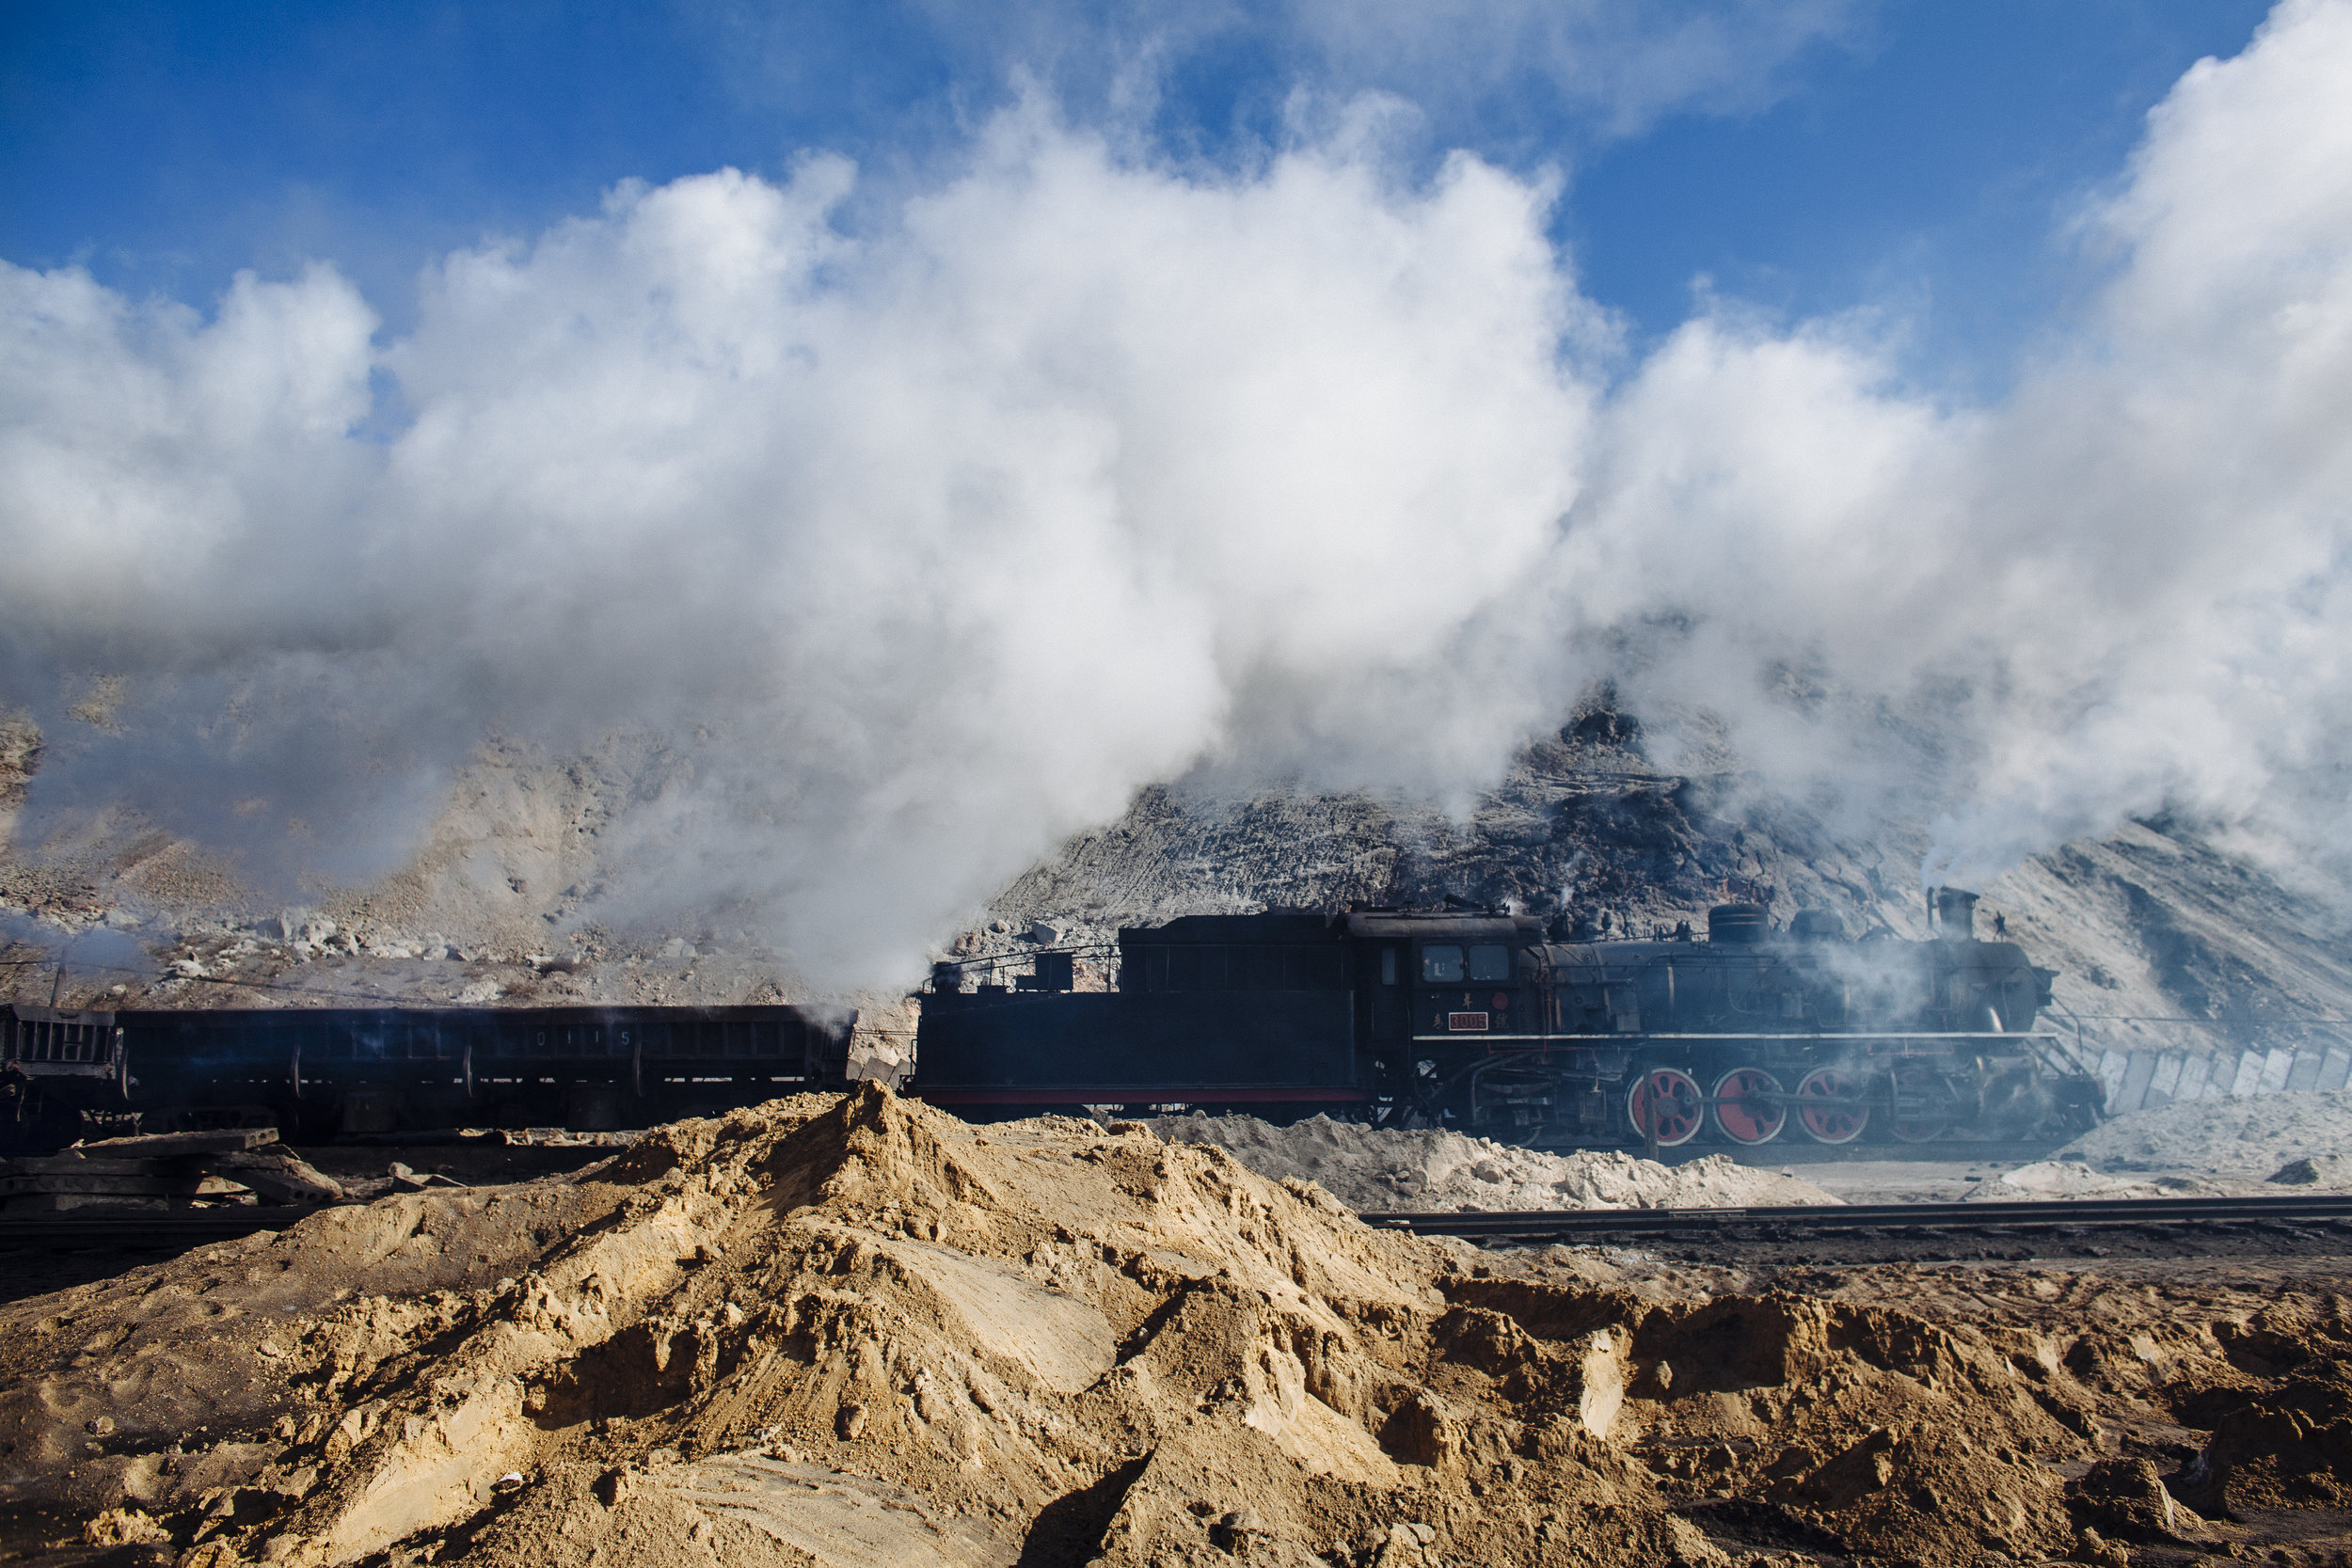 A steam locomotive makes its way inside the opencast coal mine in Zhalainuer, Inner Mongolia, China, Monday, March 23, 2009.